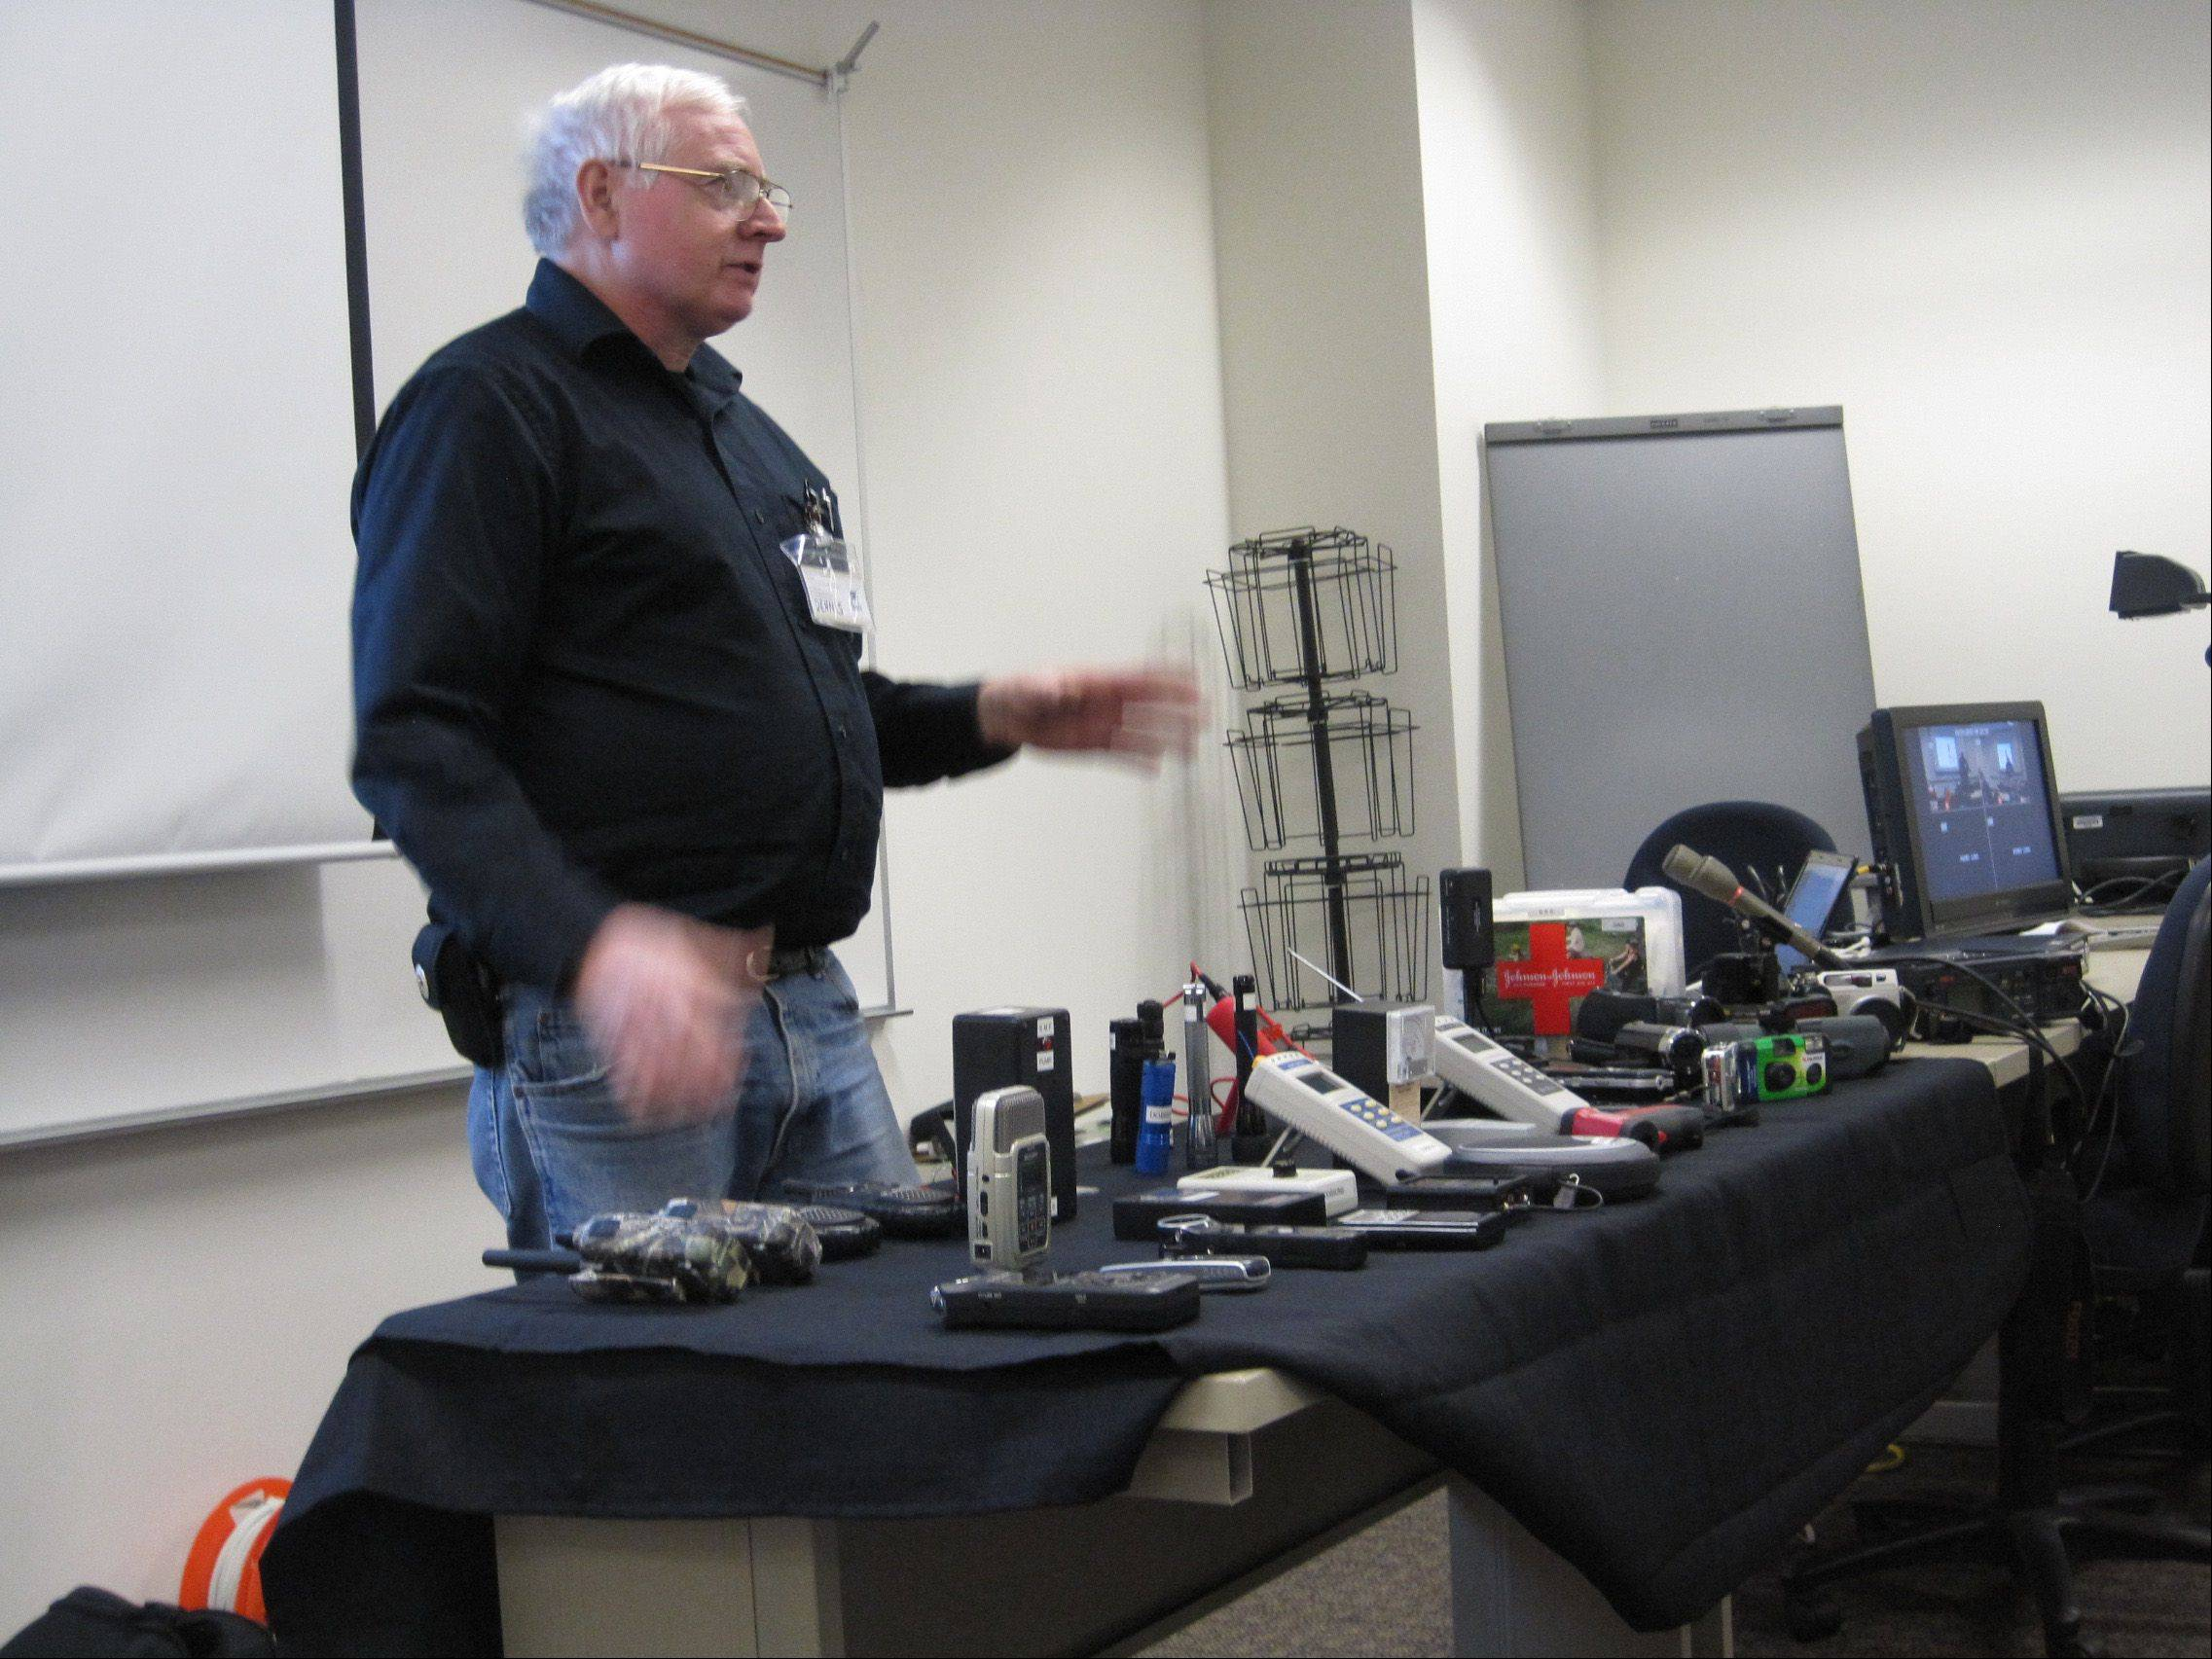 Dennis Dobson, who with his wife, Judy, is a founding member of the Society for Anomalous Studies, talks about the audio and visual equipment that ghost hunters can use.